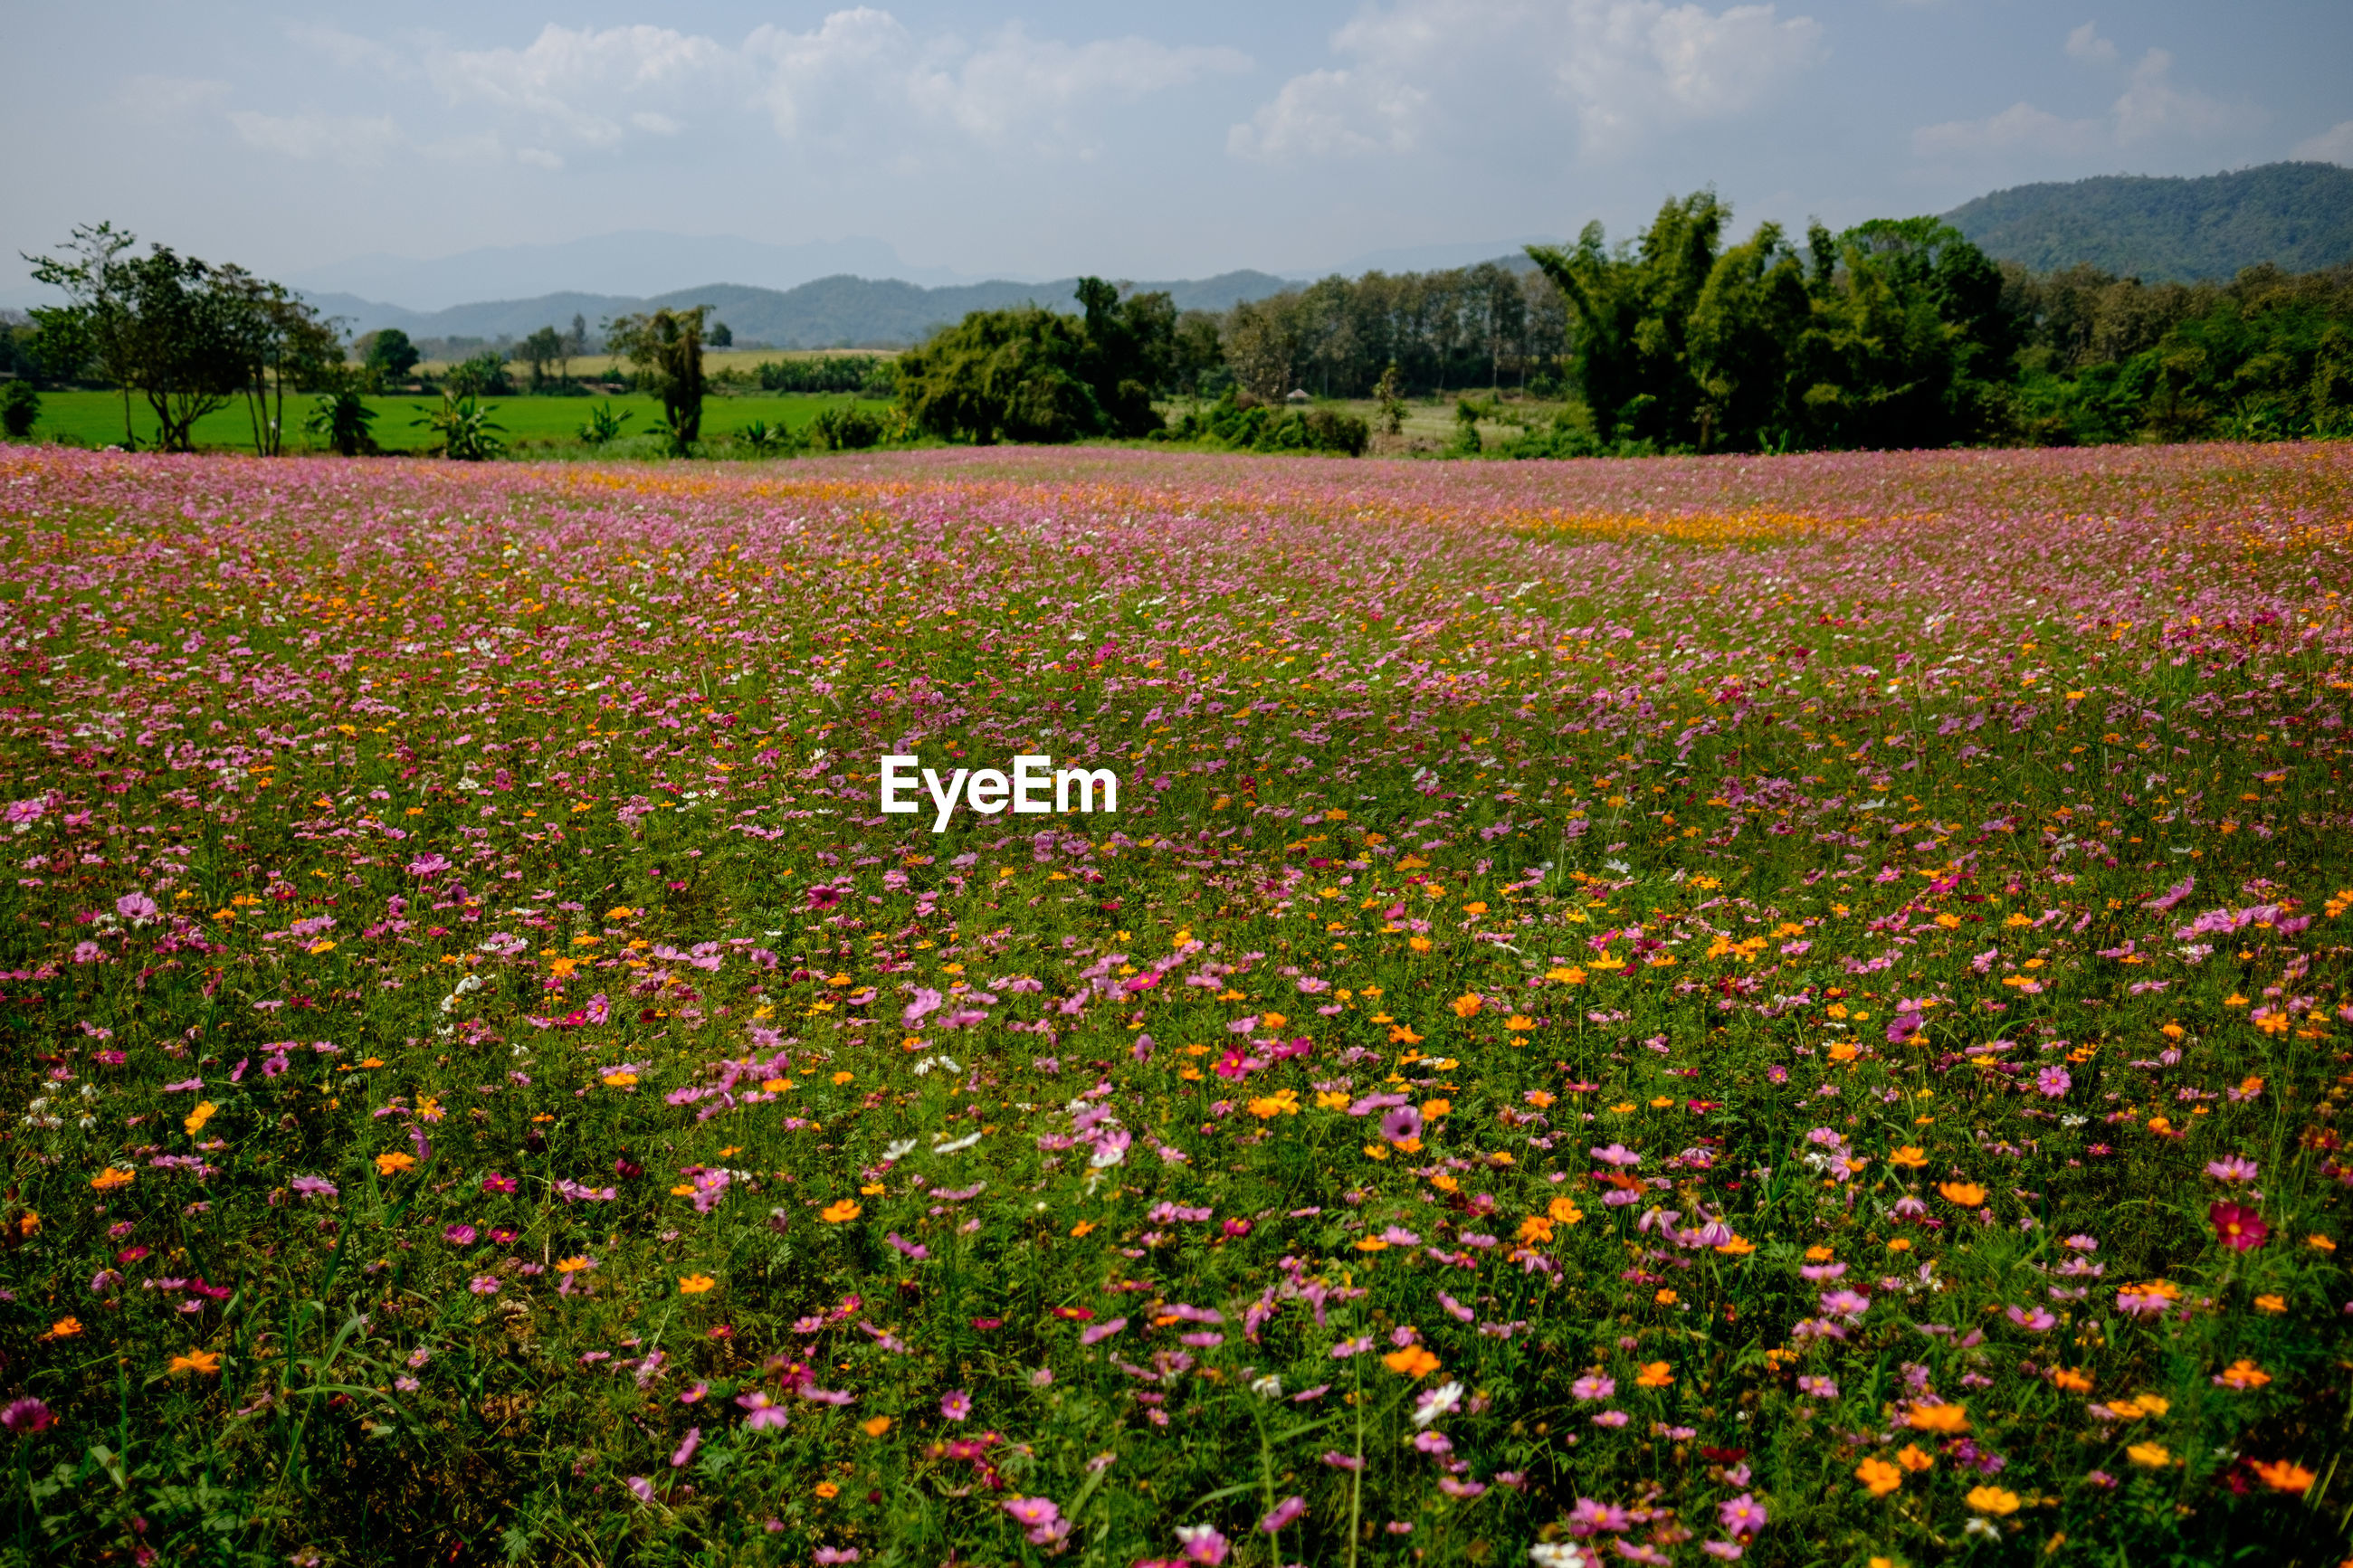 SCENIC VIEW OF FLOWERING PLANTS ON LAND